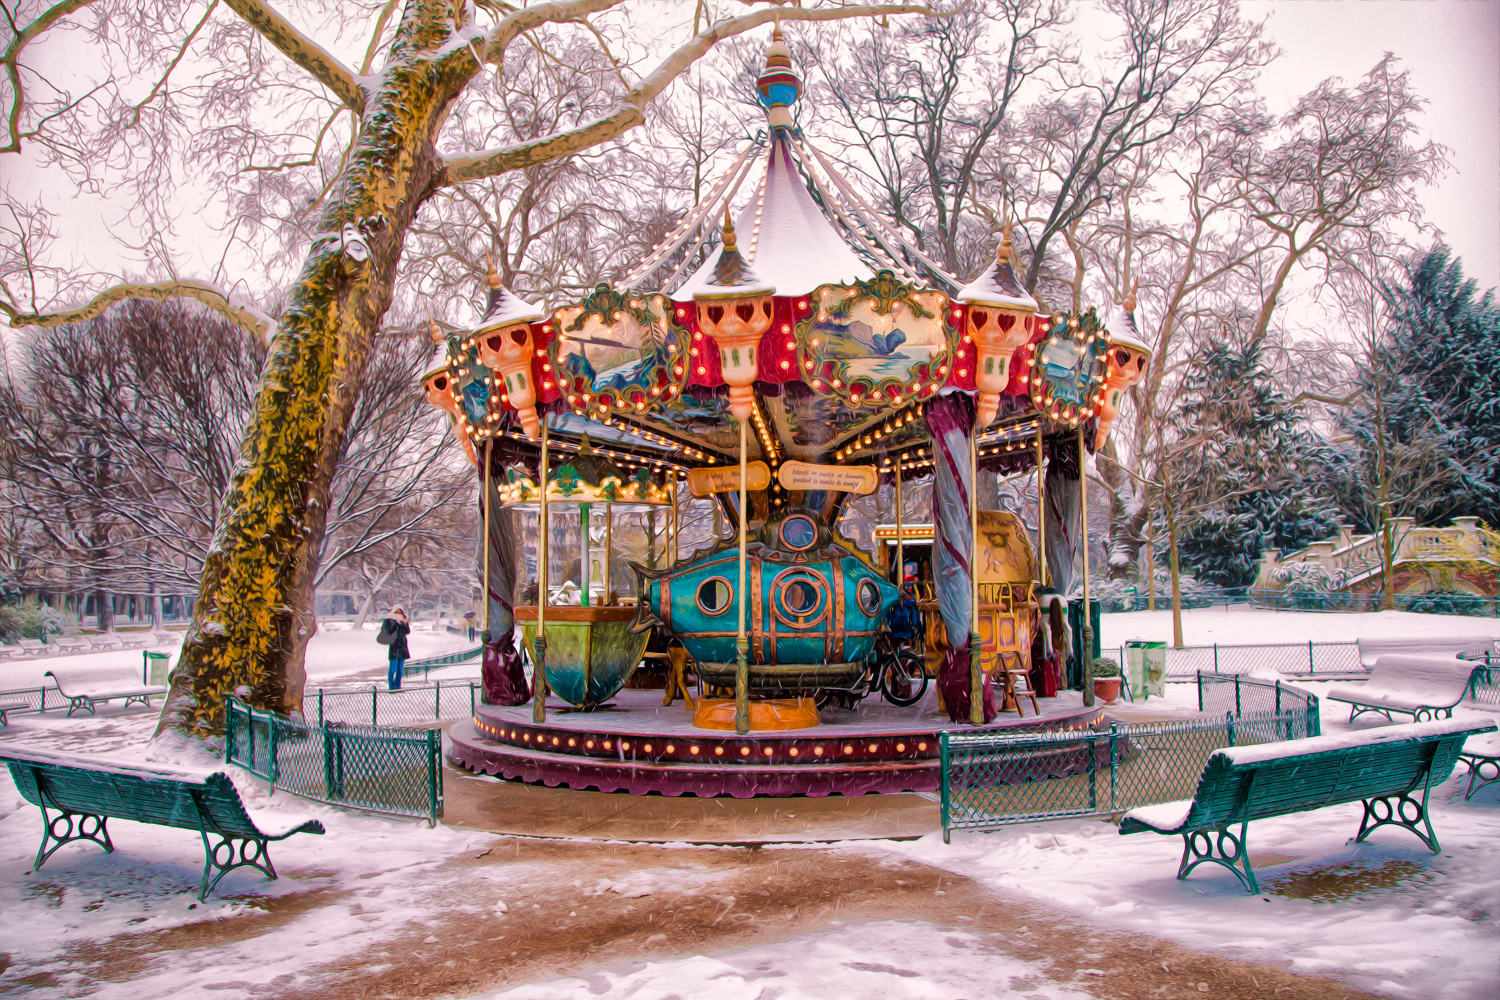 The lonely carousel, Parc de Monceau (Snow in April III)